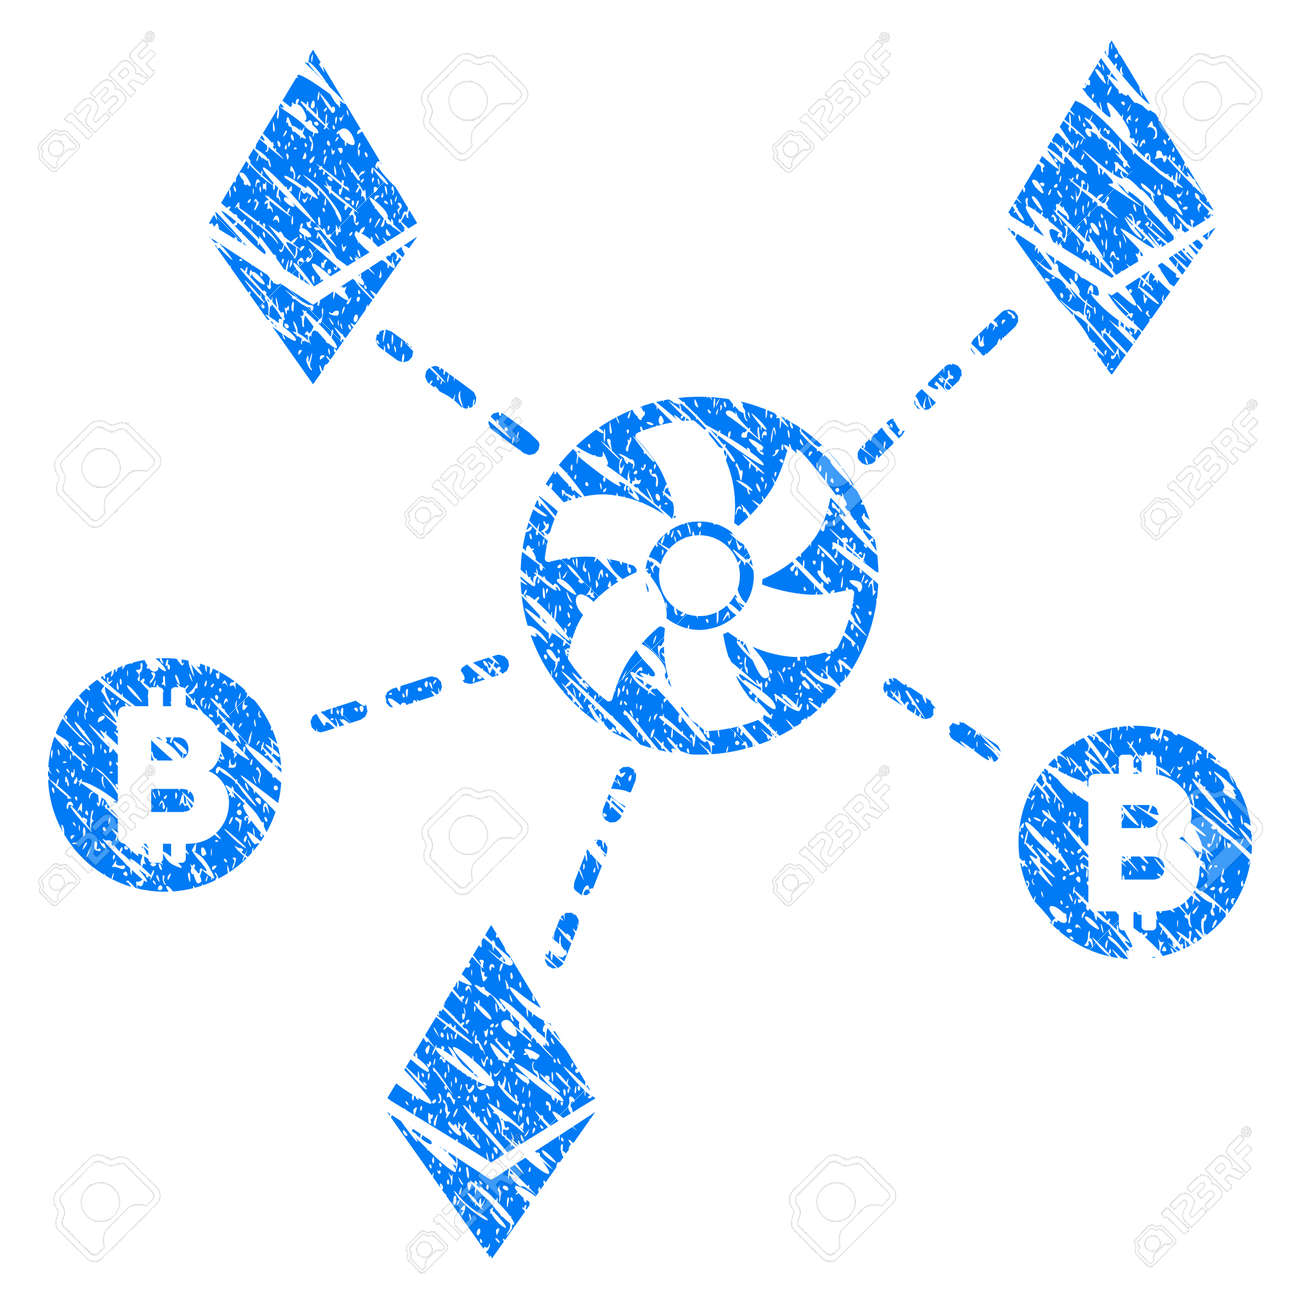 Appliance money laundering stock photos royalty free business images grunge cryptocurrency blender rotor icon with grunge design and scratched texture unclean raster blue pictogram buycottarizona Images